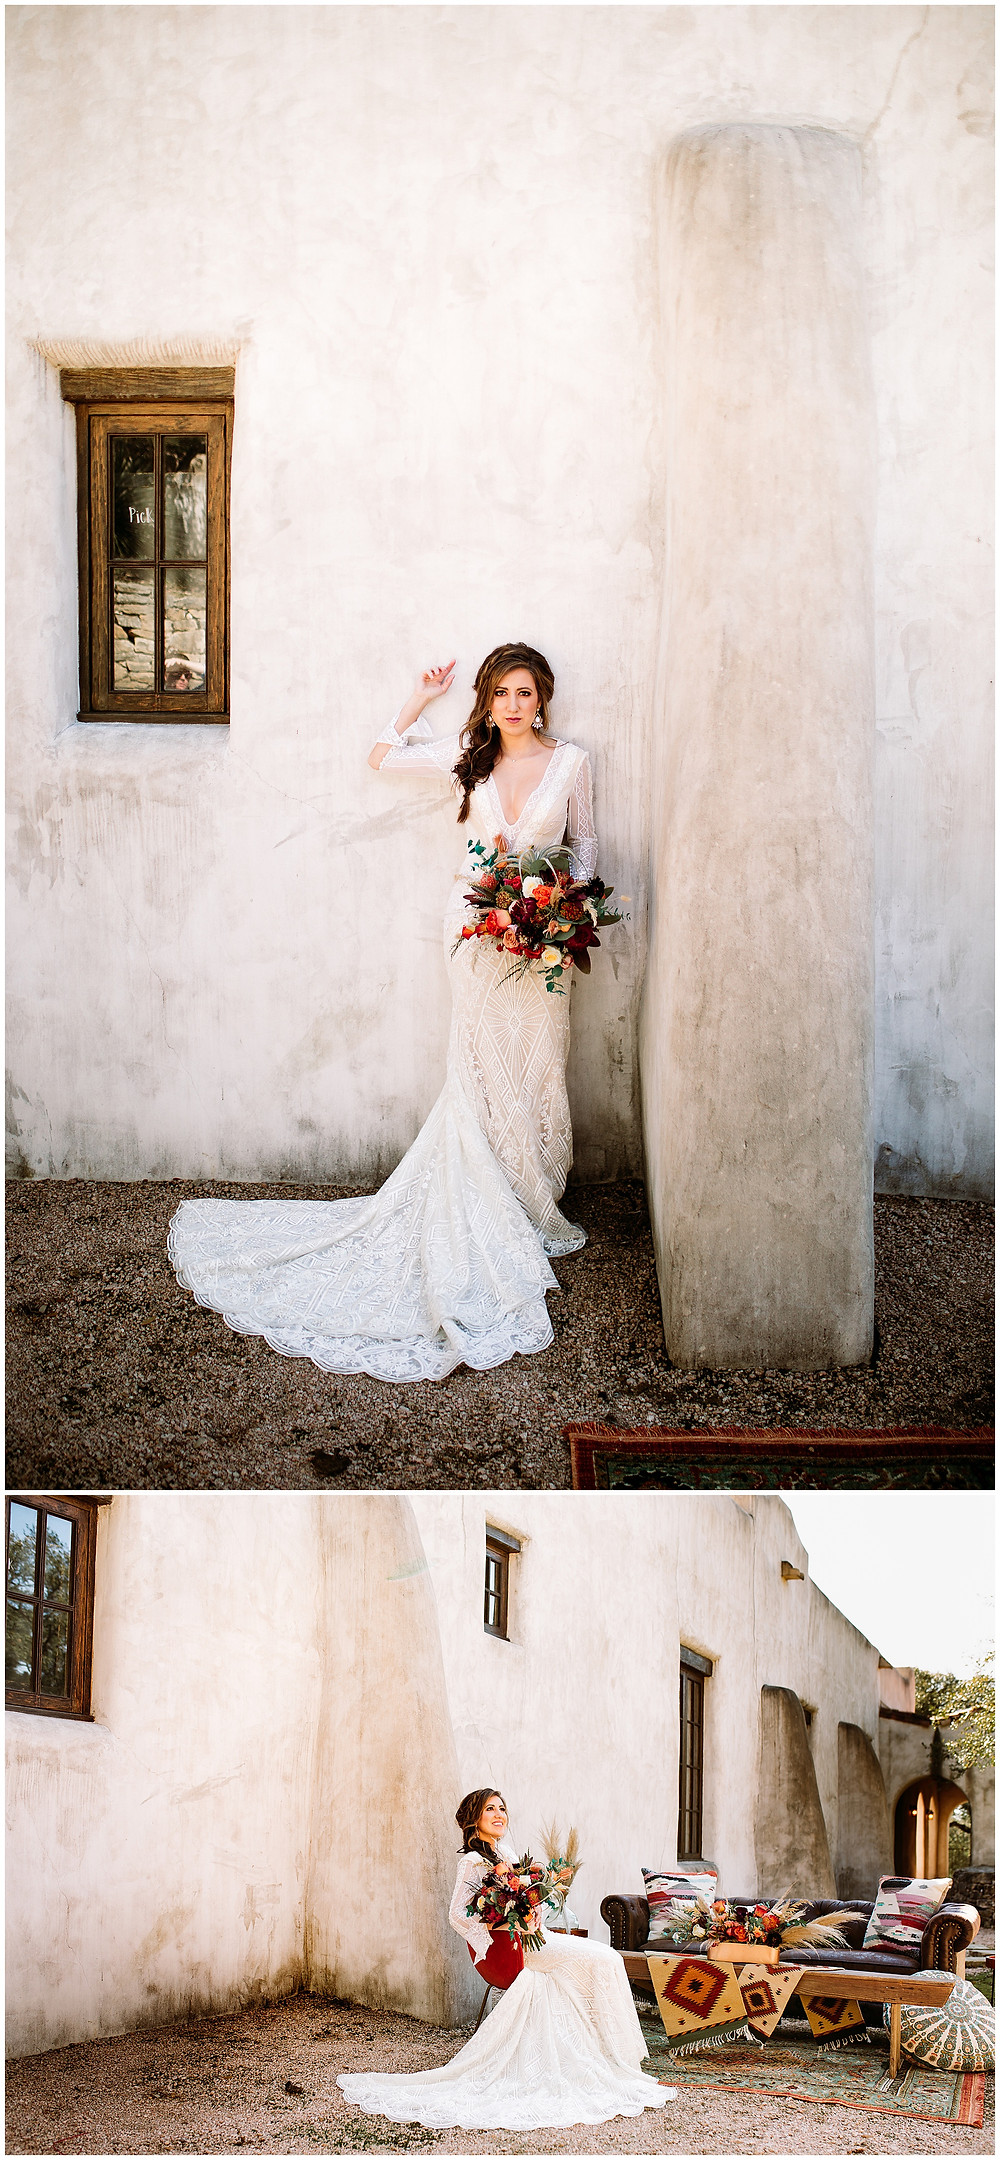 A. Cherie Couture | Custom Wedding Dress Designer in San Antonio, TX | Snap Chic Photography | Boerne Wedding